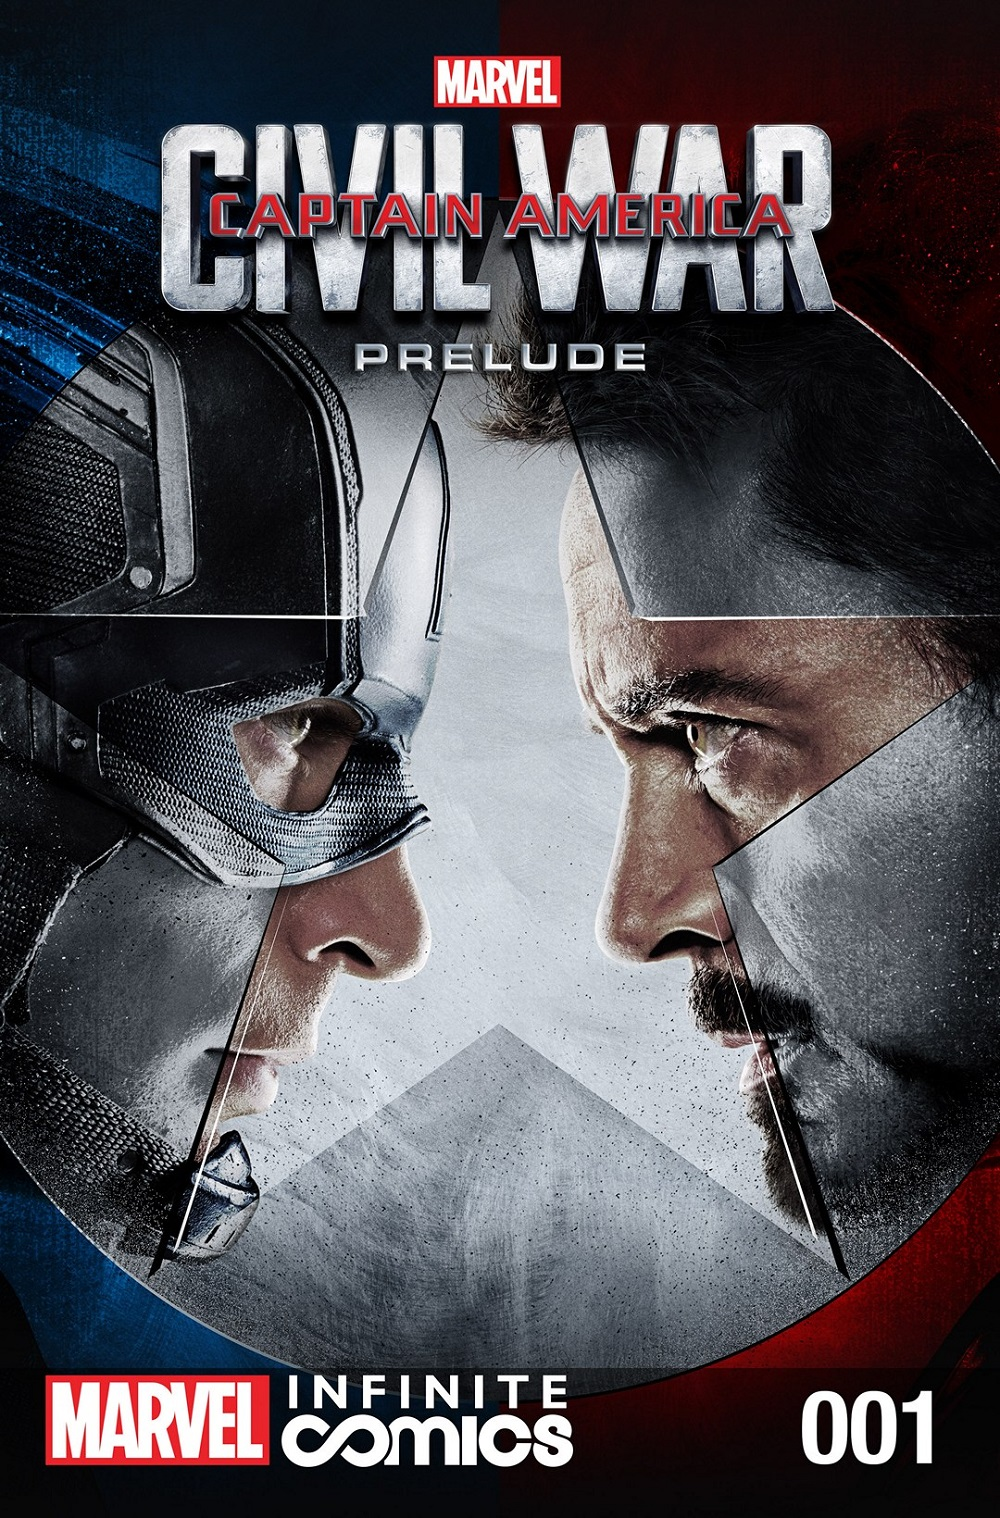 mcu-comics-films-marvel-studios-liste-civil-war-prelude